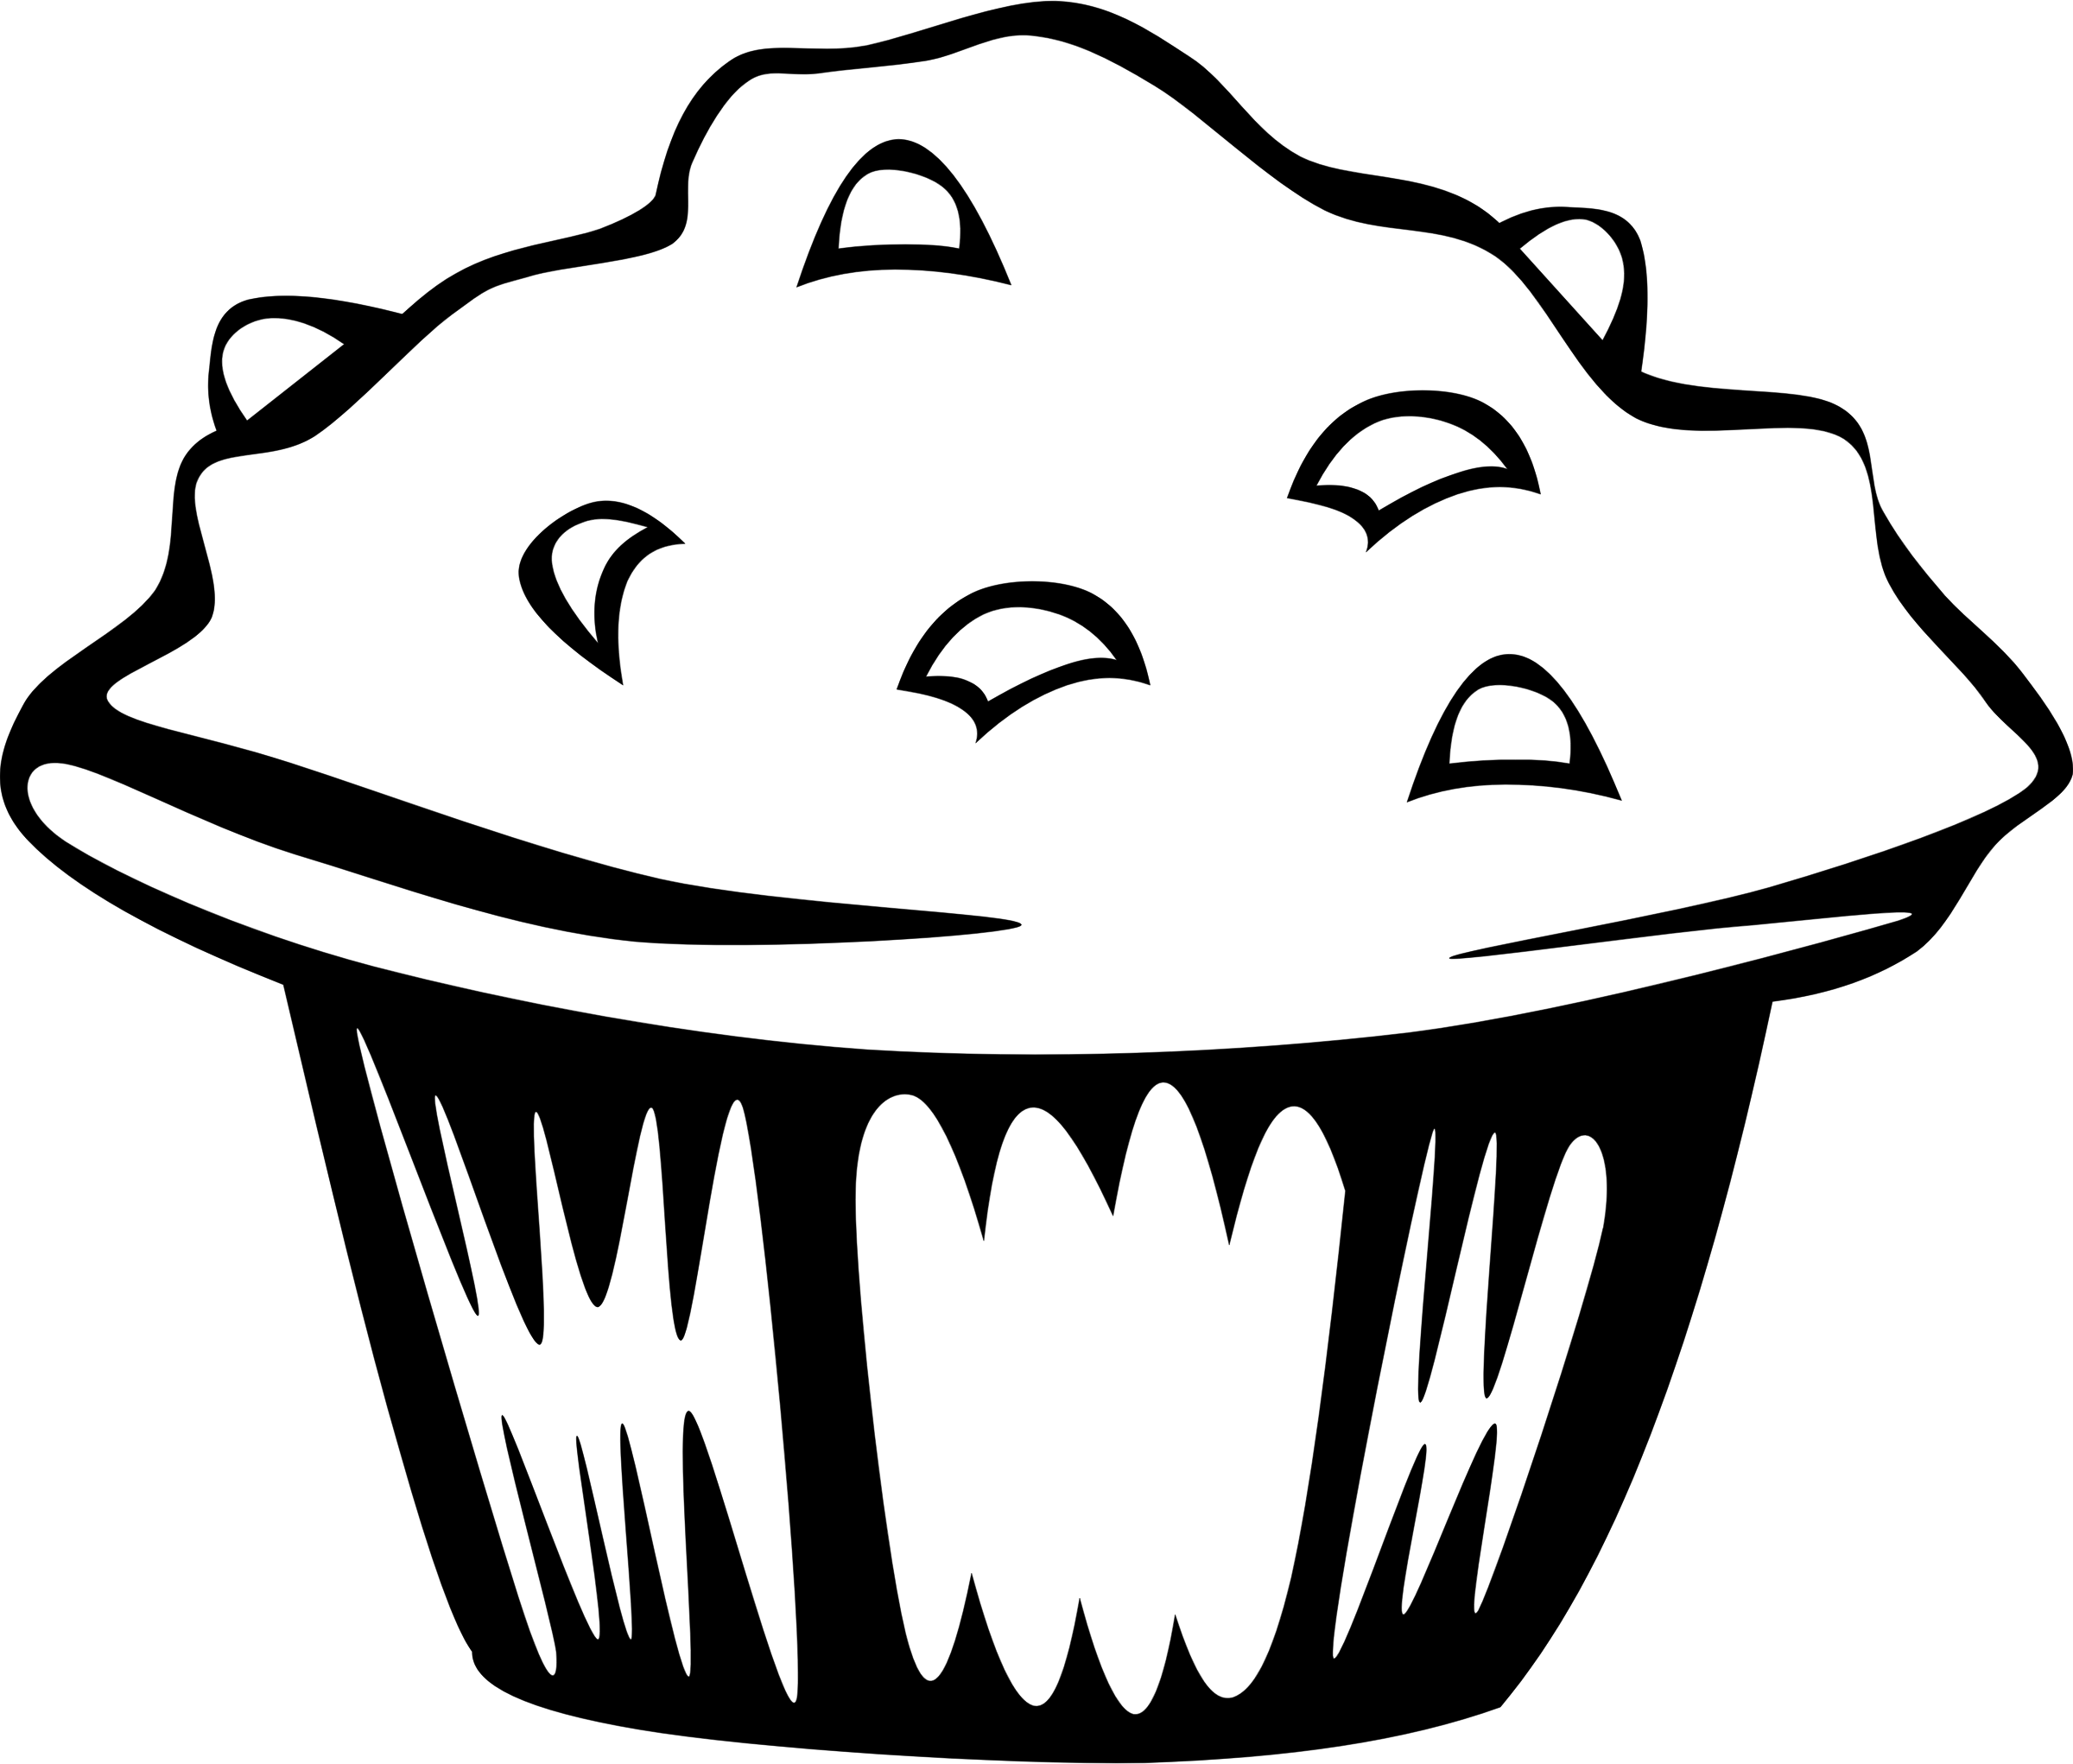 muffin pictures to color muffin coloring pages coloring home pictures color muffin to